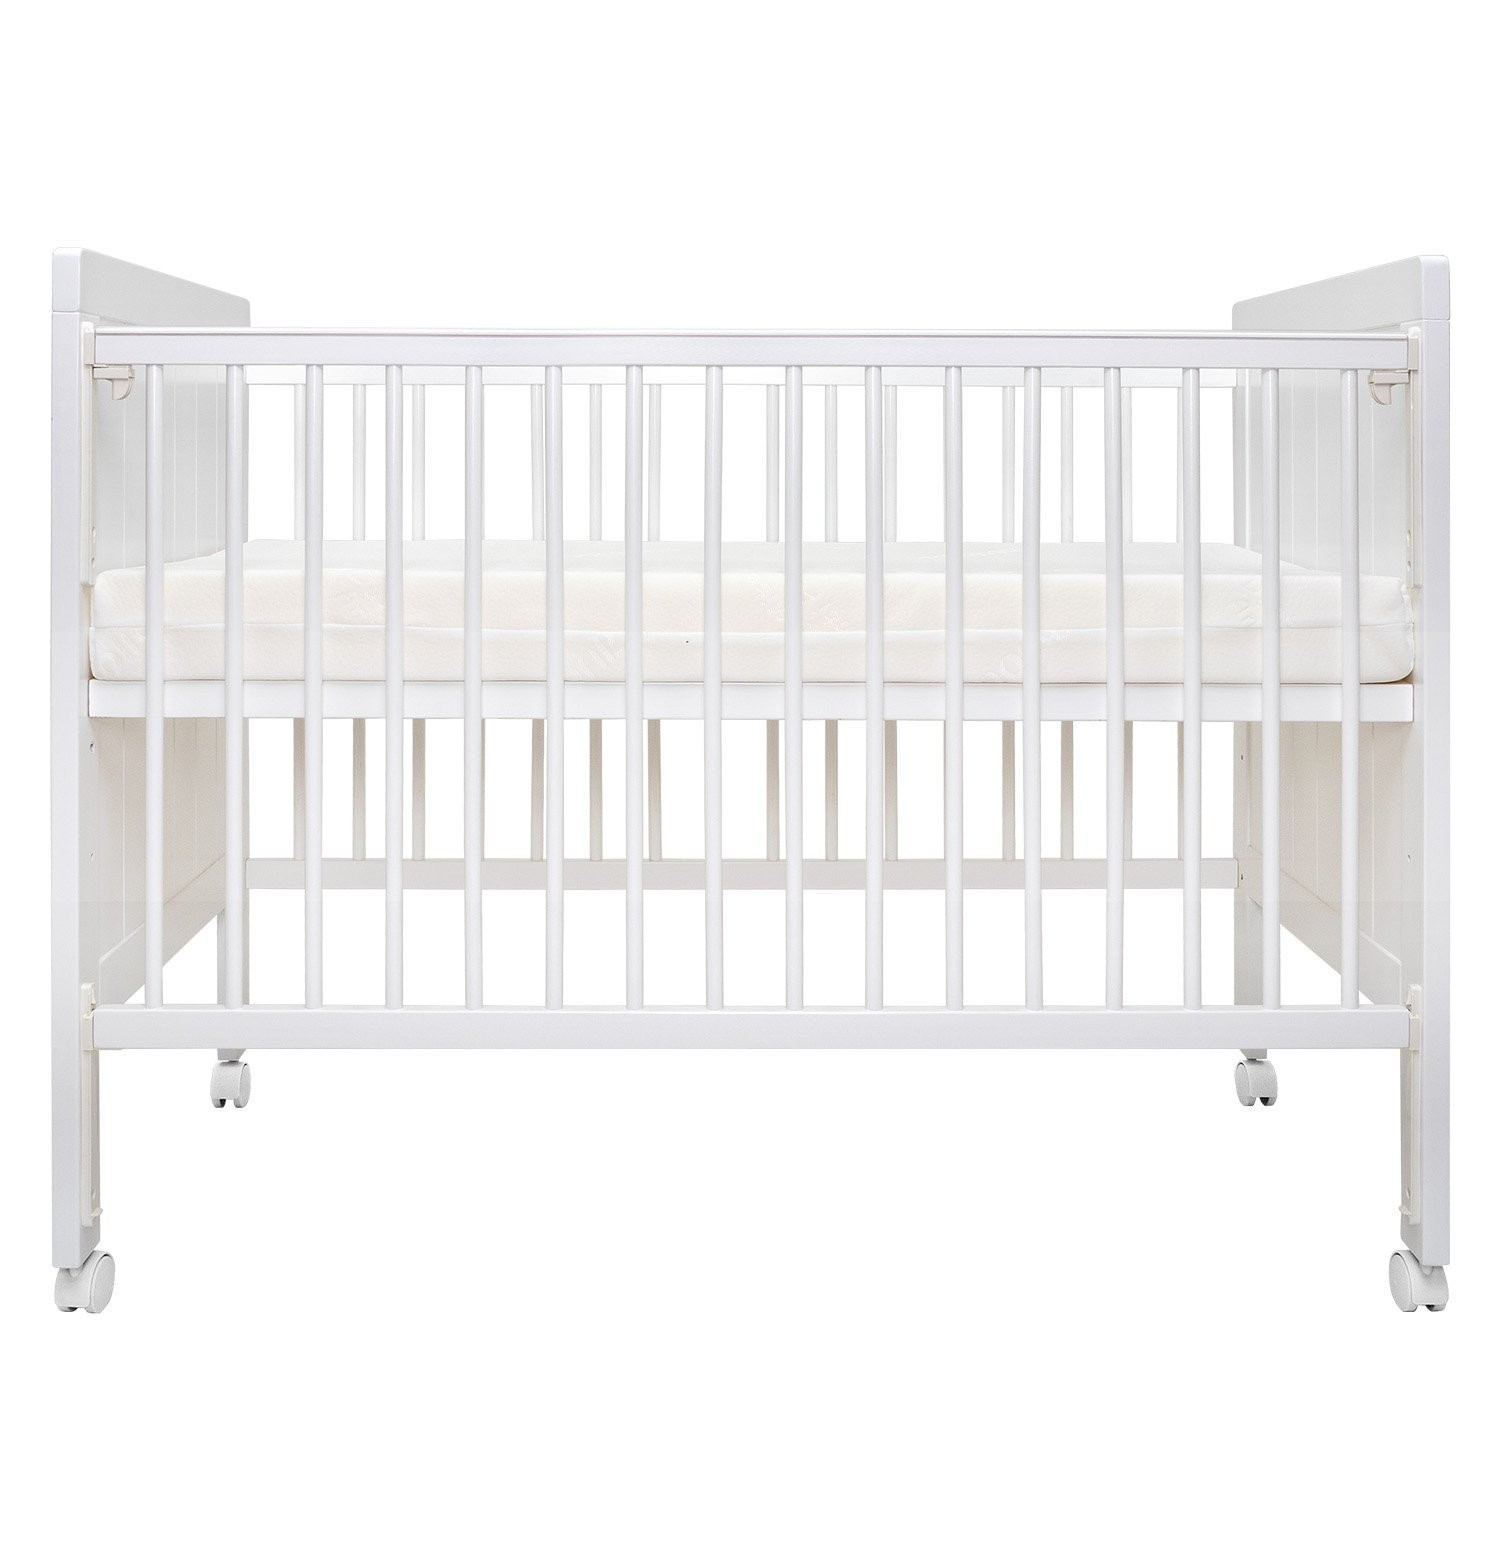 Bonbijou Atlas 5-in-1 Baby Cot with Foam Mattress